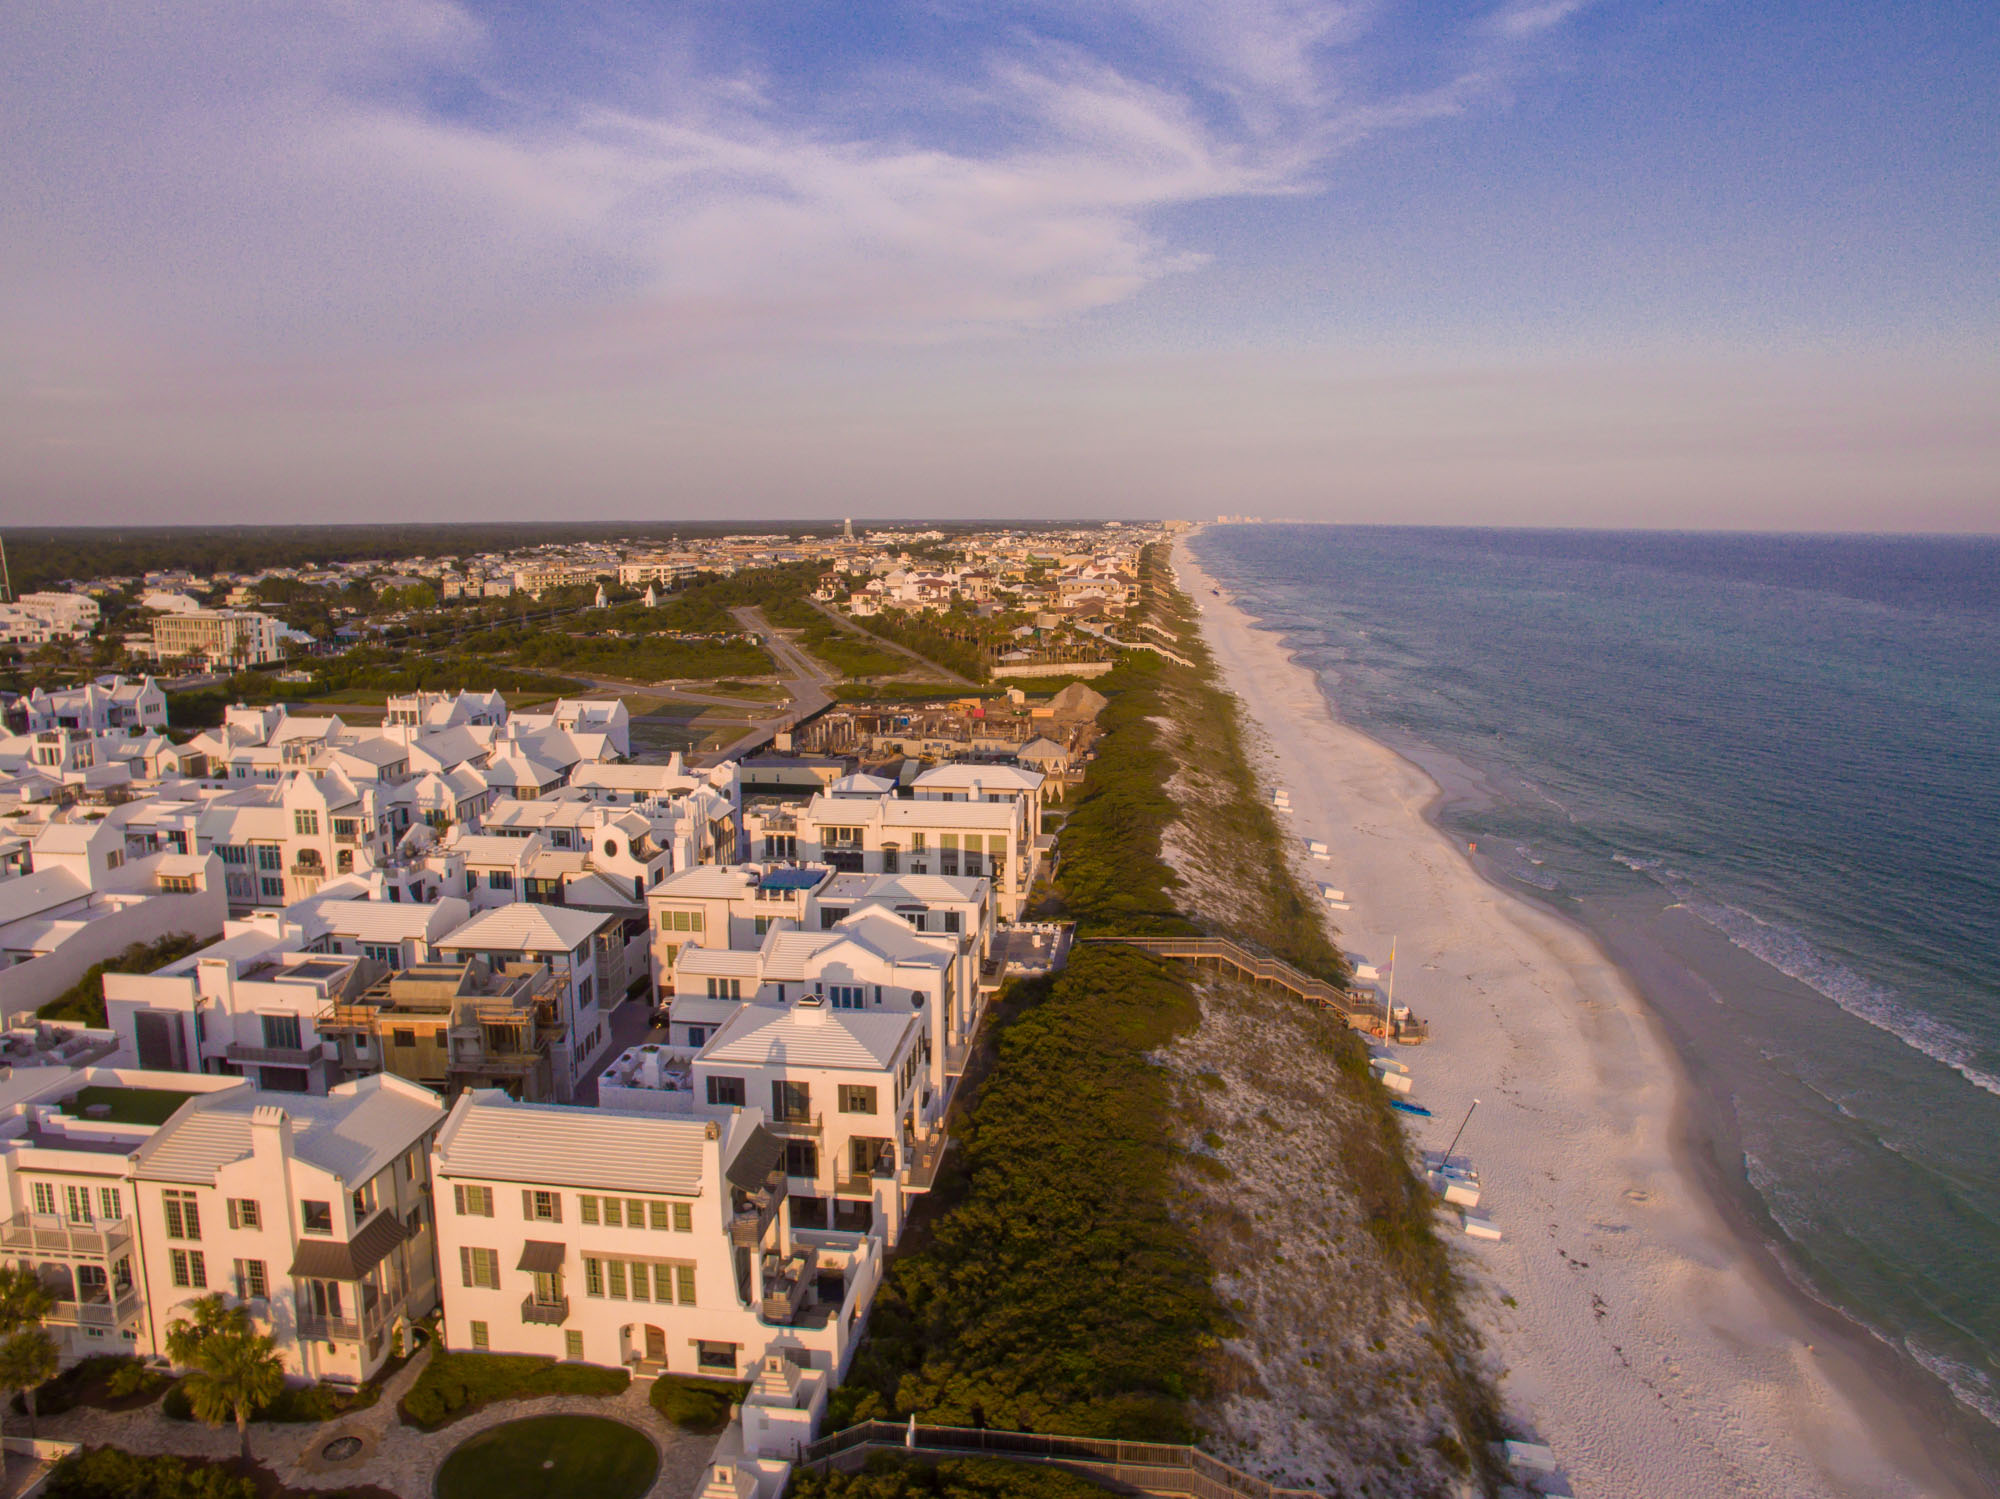 Alys Beach Gulf Front Homes For Sale